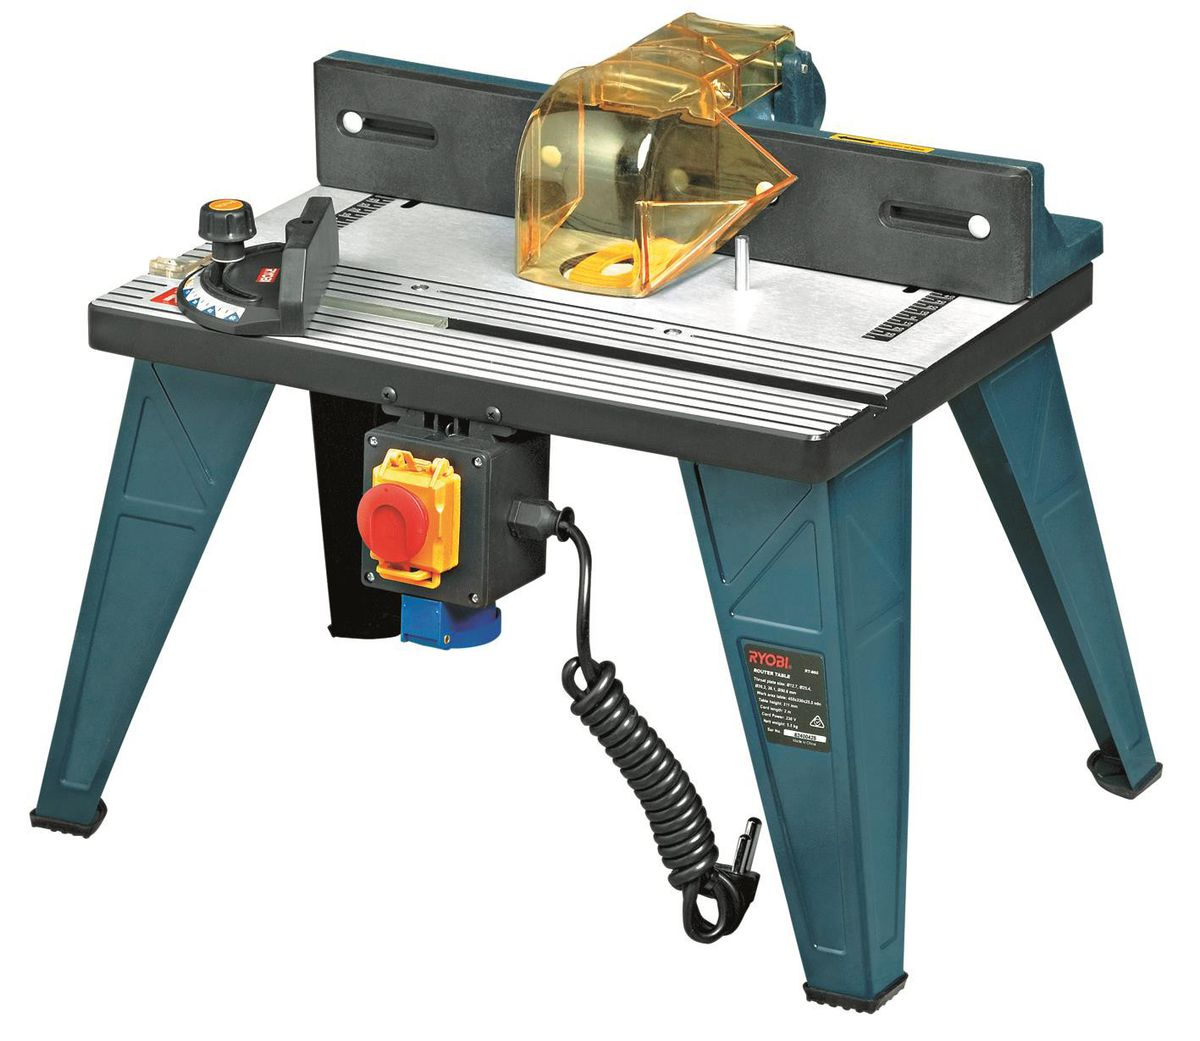 Ryobi router attachment table buy online in south africa ryobi router attachment table loading zoom keyboard keysfo Image collections